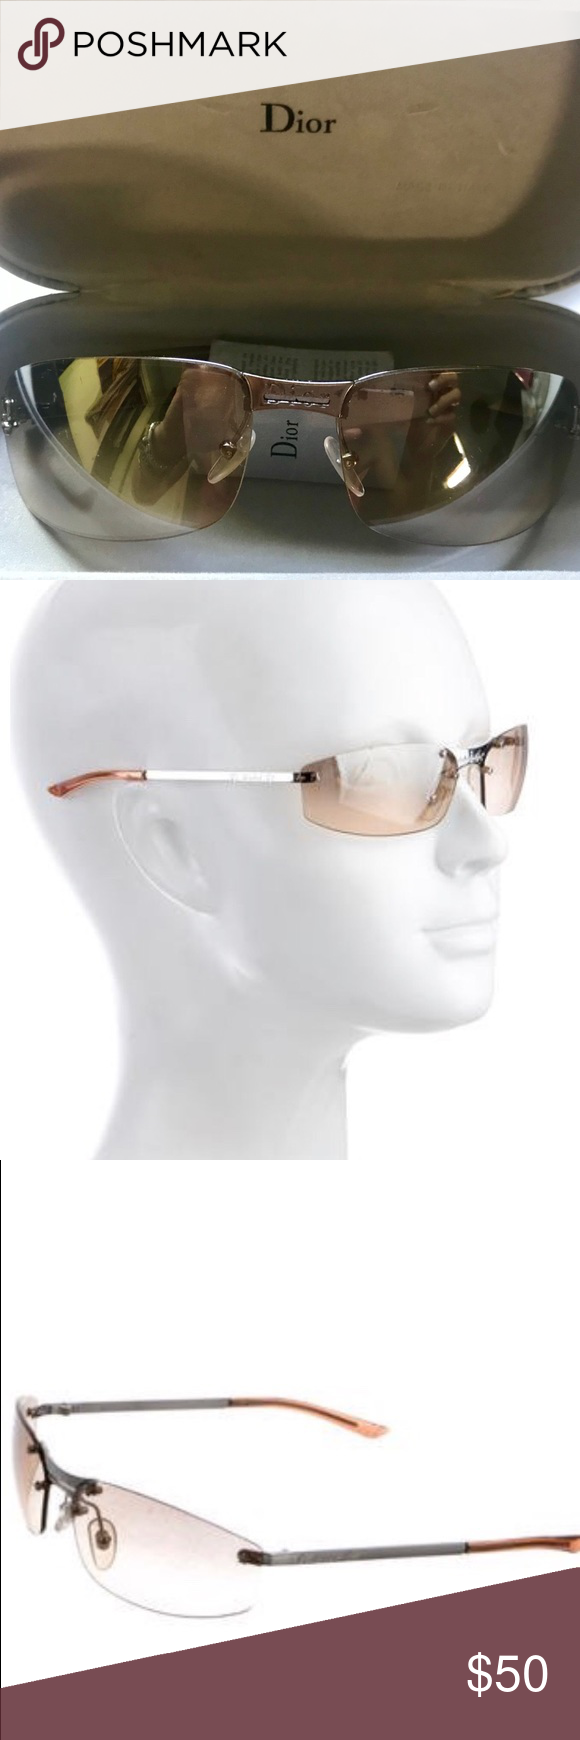 fab49c079ad0 These Christian Dior sunglasses have been loved... But they are Dior!  Frames and lenses show scratches and wear Arms are loose Material  Metal    Plastic ...